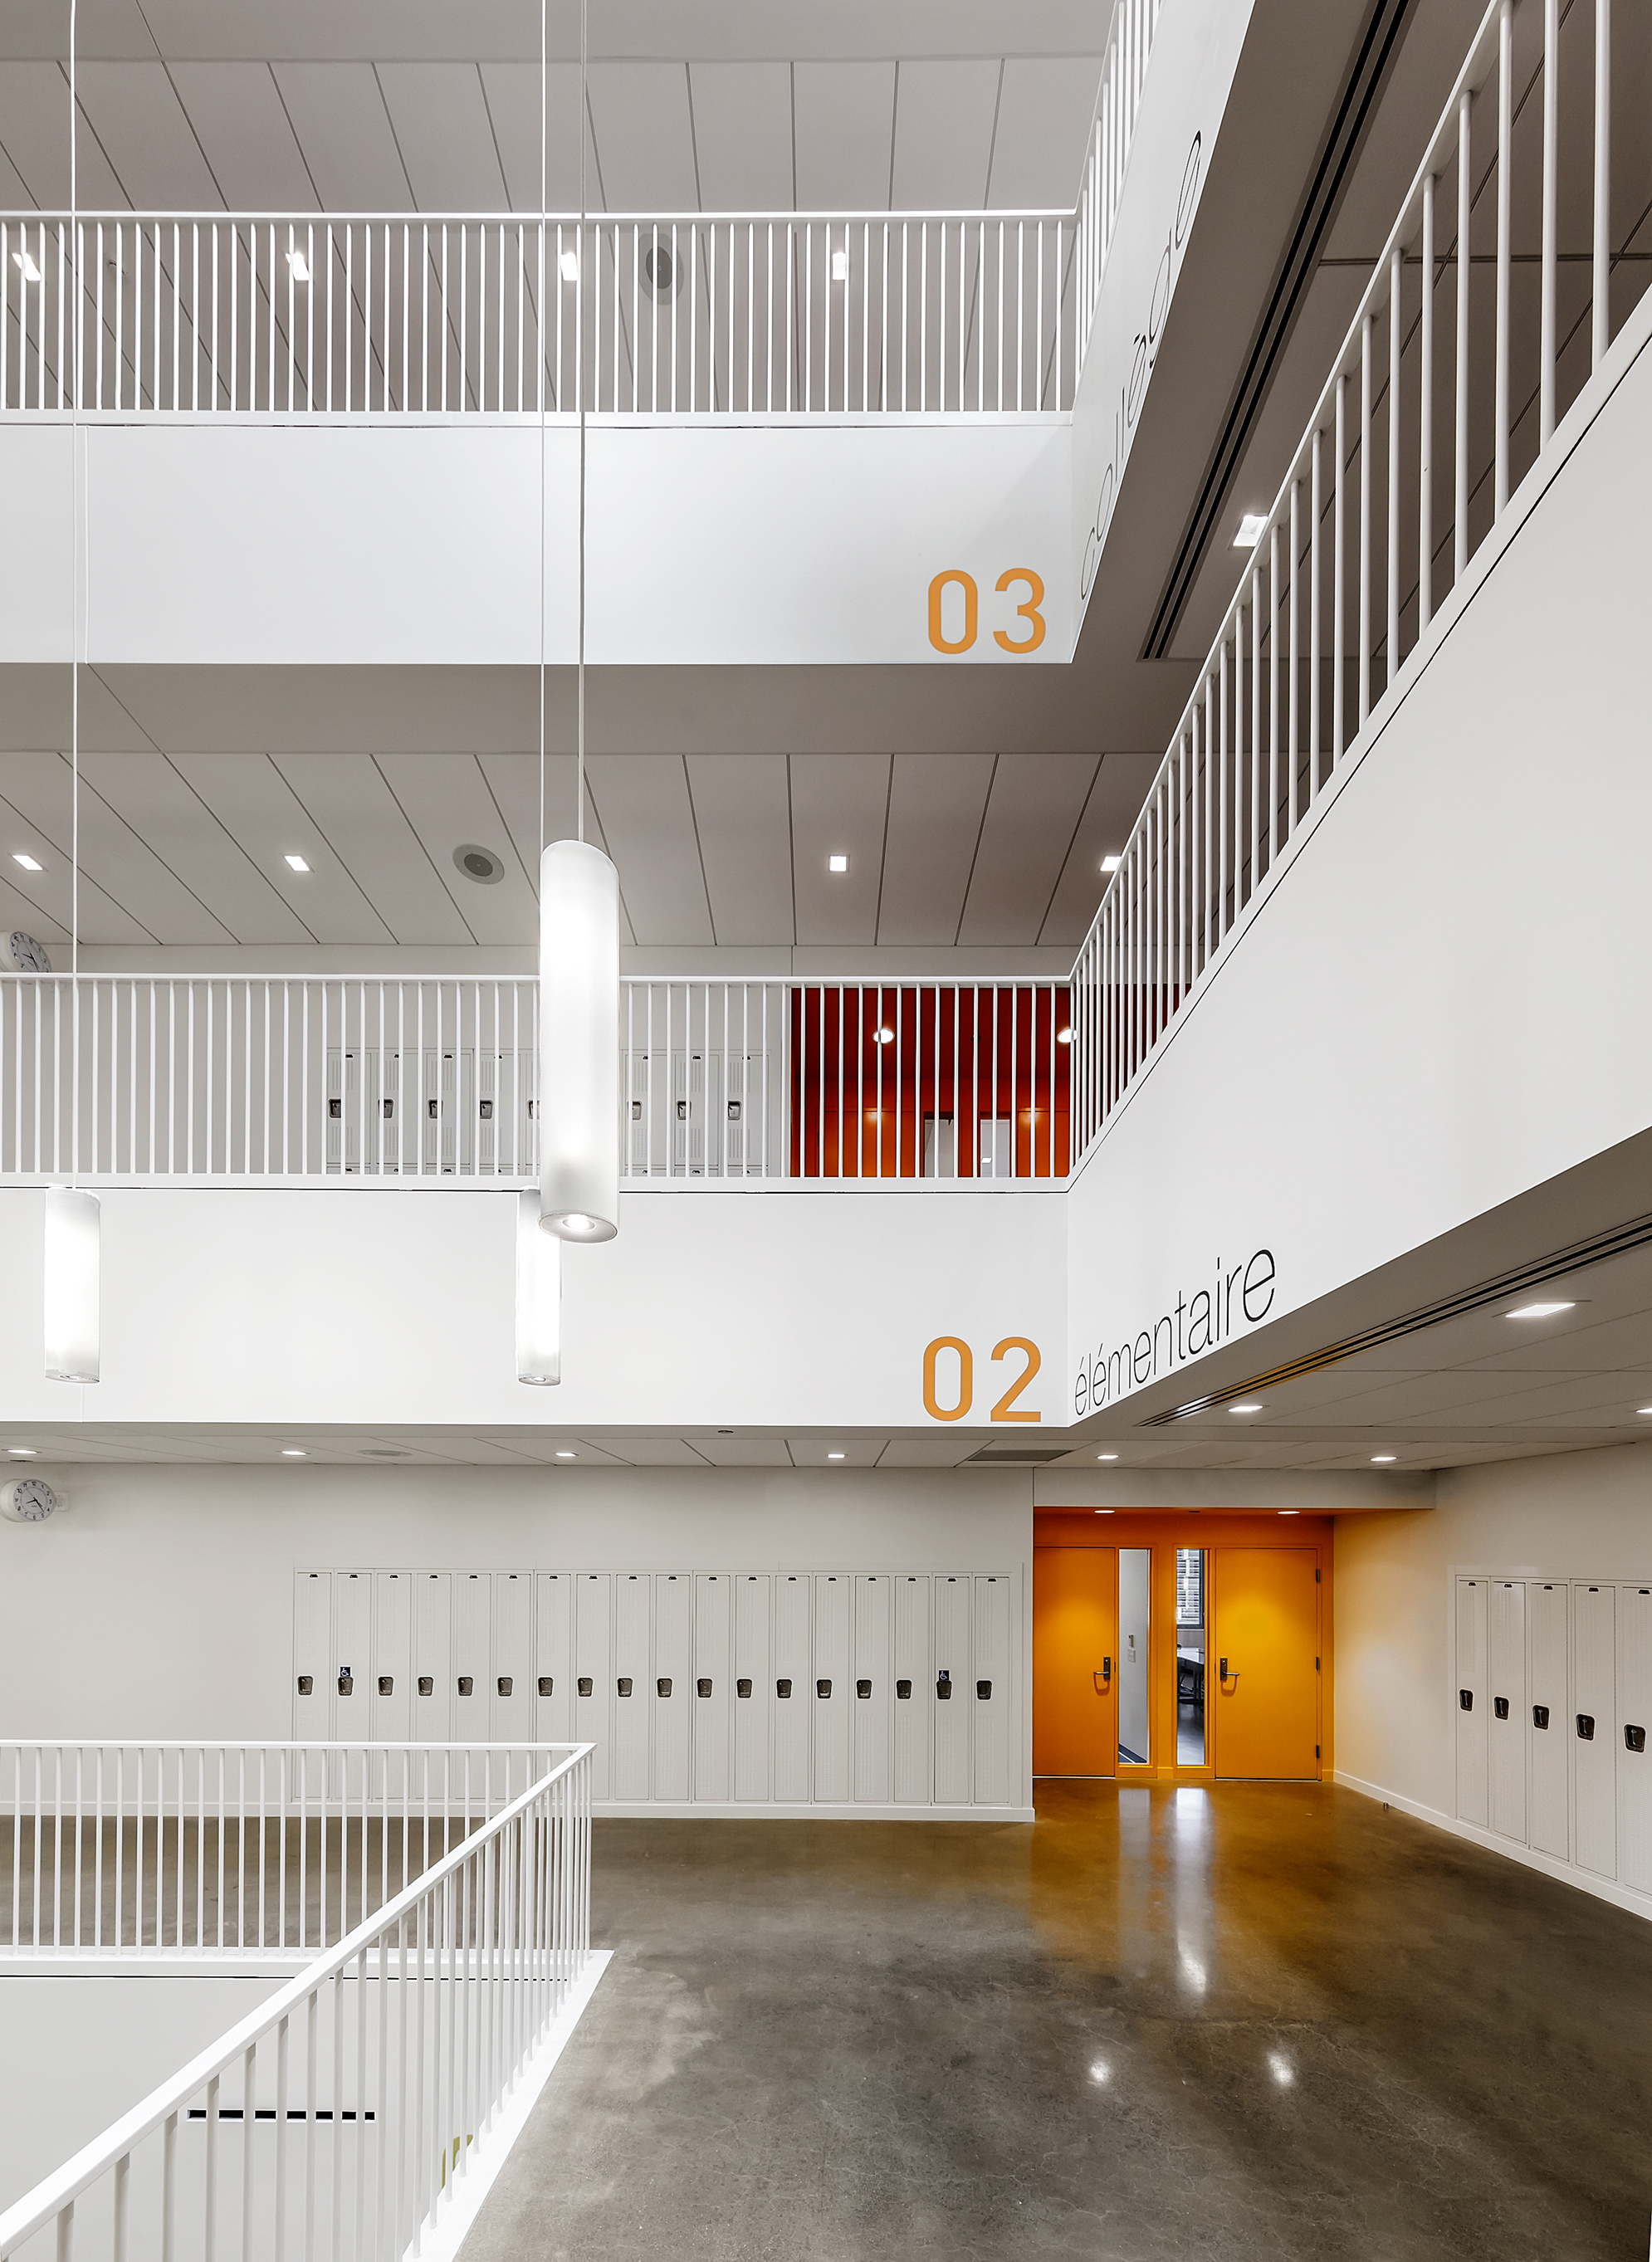 Lycee francais de chicago project management advisors pma for Stl architects